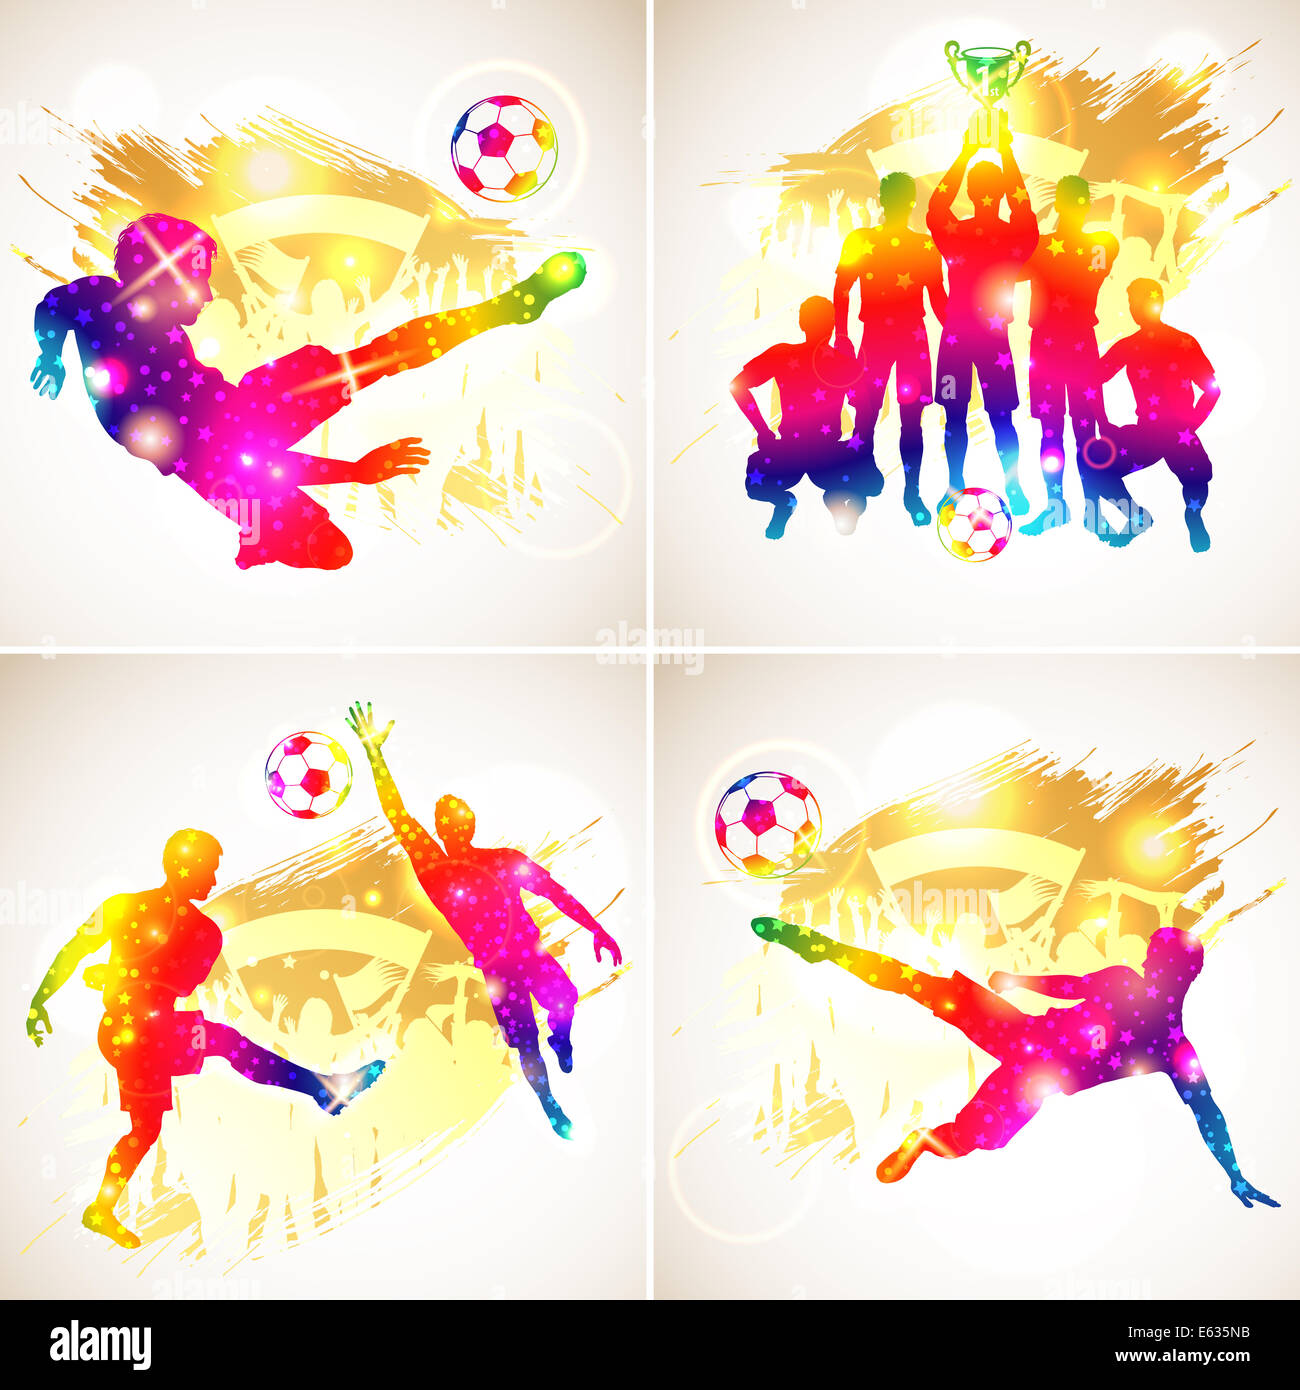 Bright Rainbow Silhouette Soccer Players, Goalkeeper, Team Champion with Cup, Fans on grunge background, illustration - Stock Image